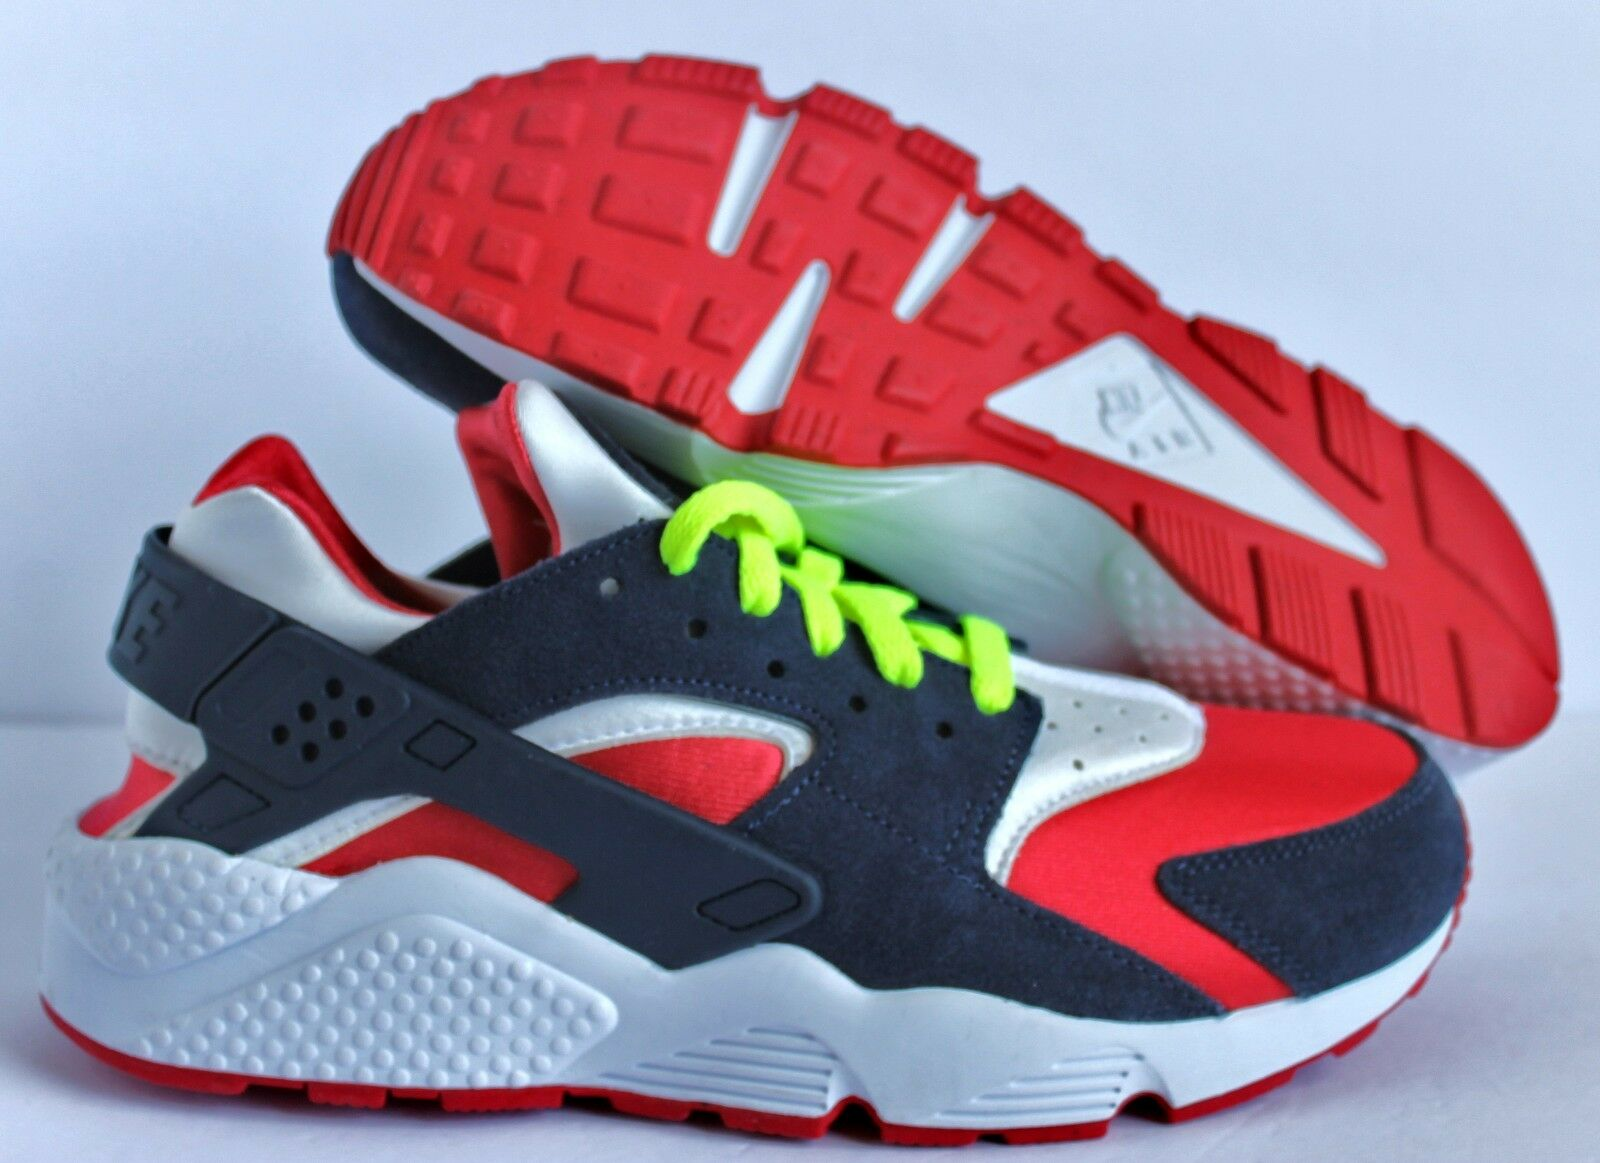 Nike homme Huarache Premium ID rouge-Navy-blanc SZ 9 chaussures  [777330-972]